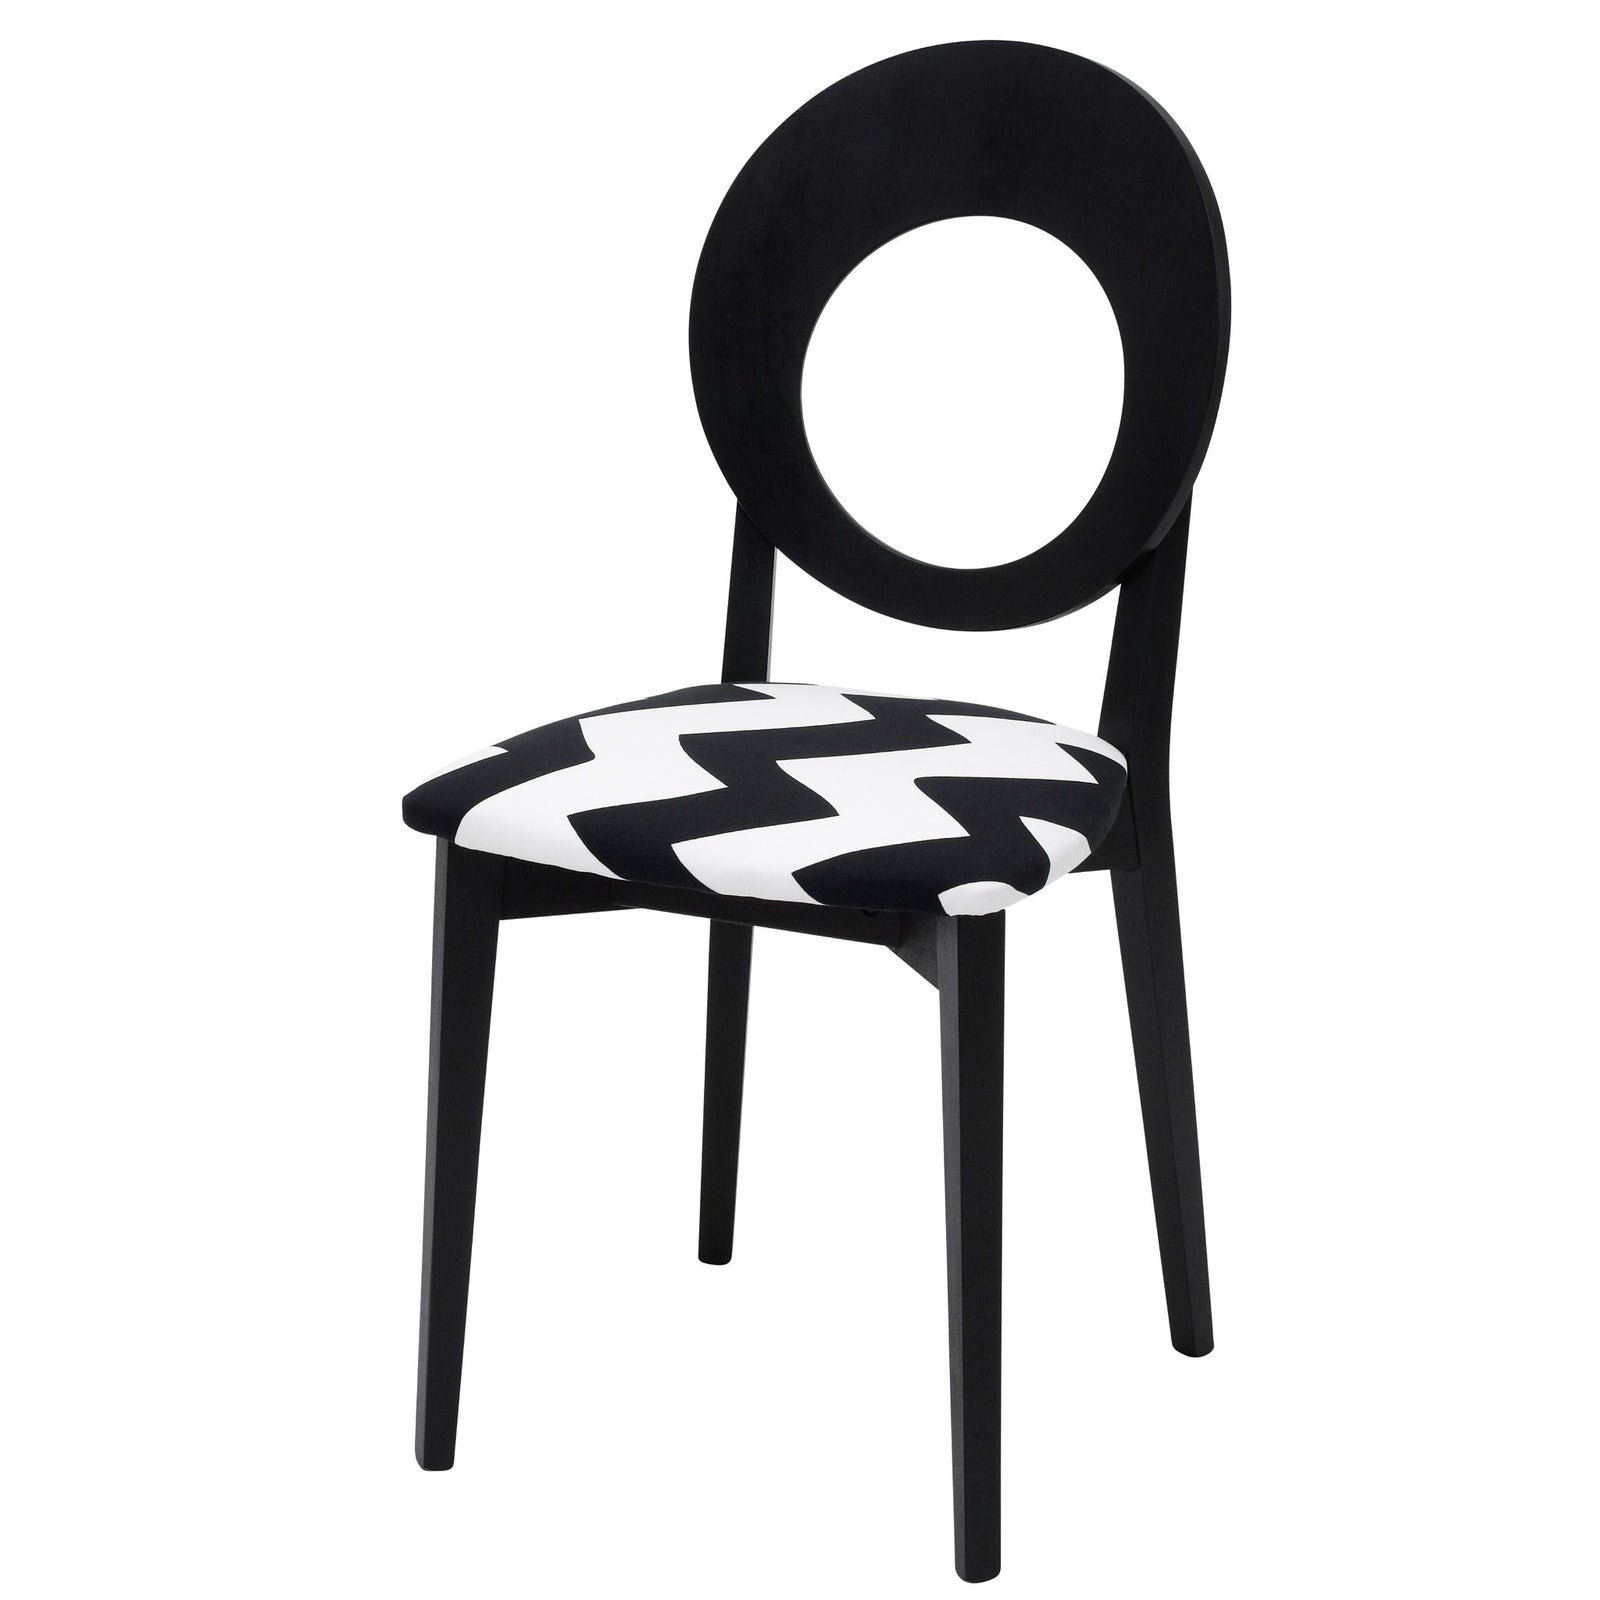 Black Italian Dining Chair Upholstered in Tizzy Peaks By Jon Burgerman